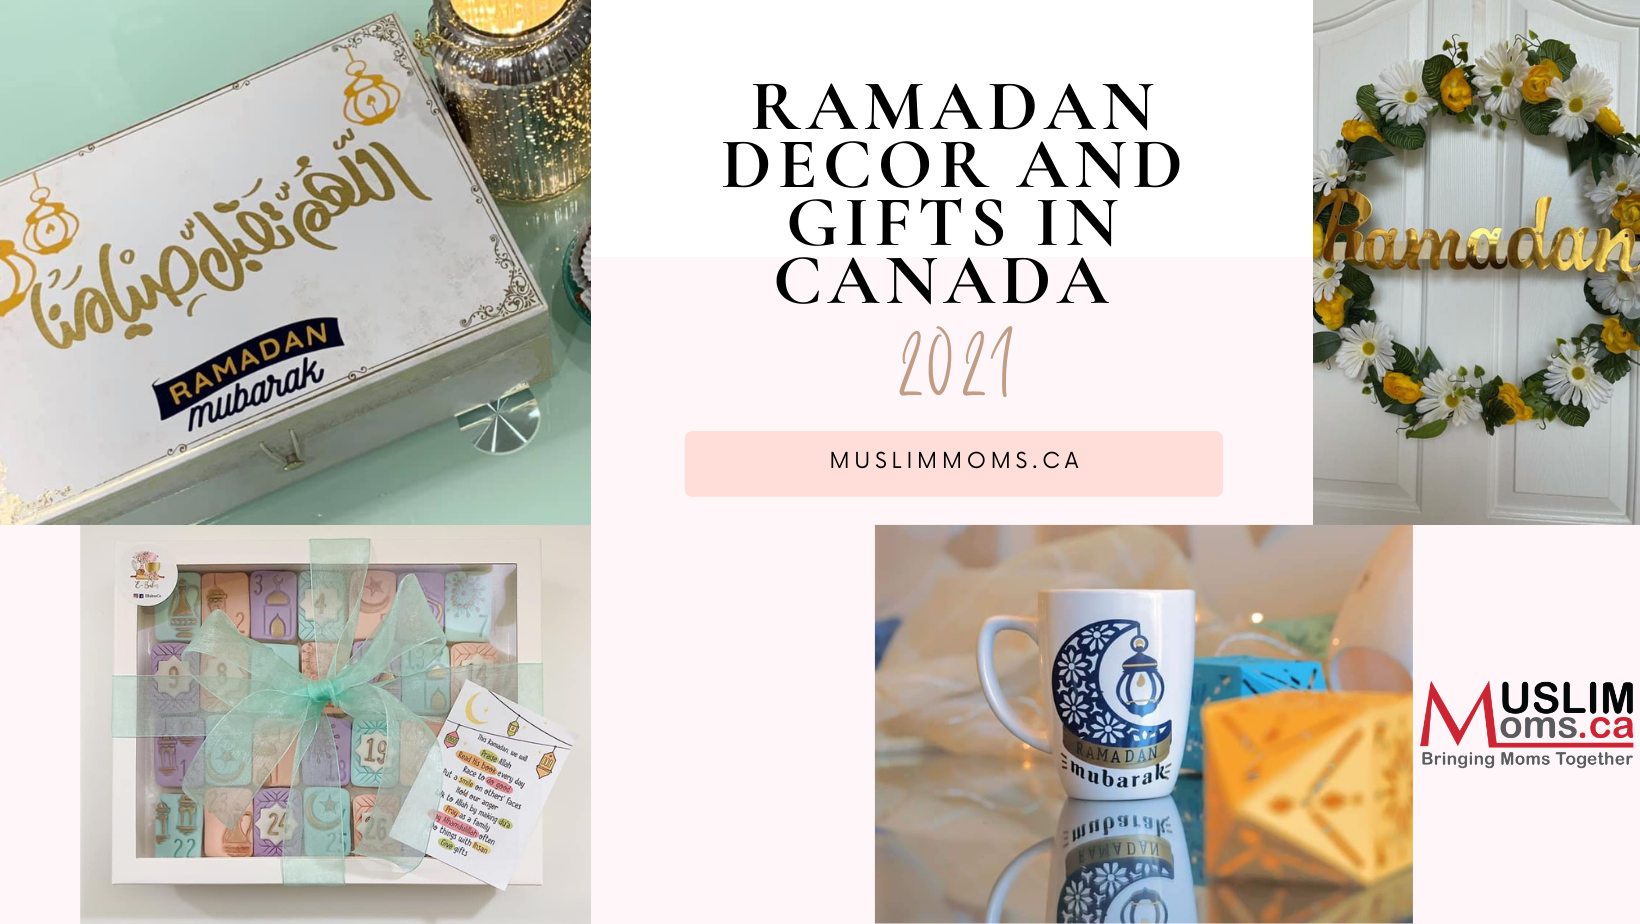 Ramadan Decor and Gifts in Canada 2021